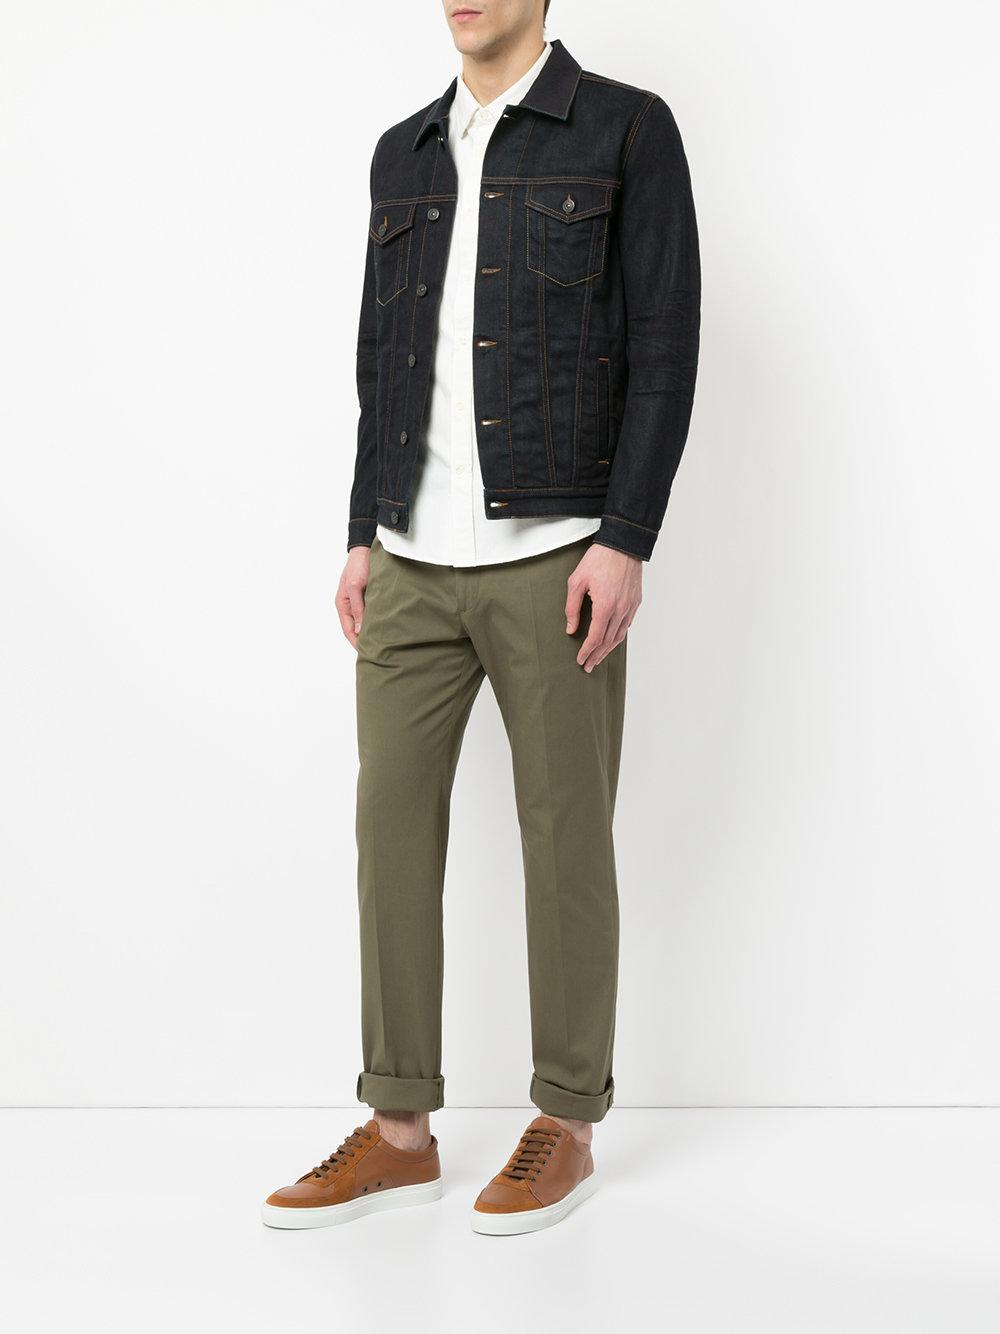 Kent & Curwen Cotton Chino Trousers in Green for Men